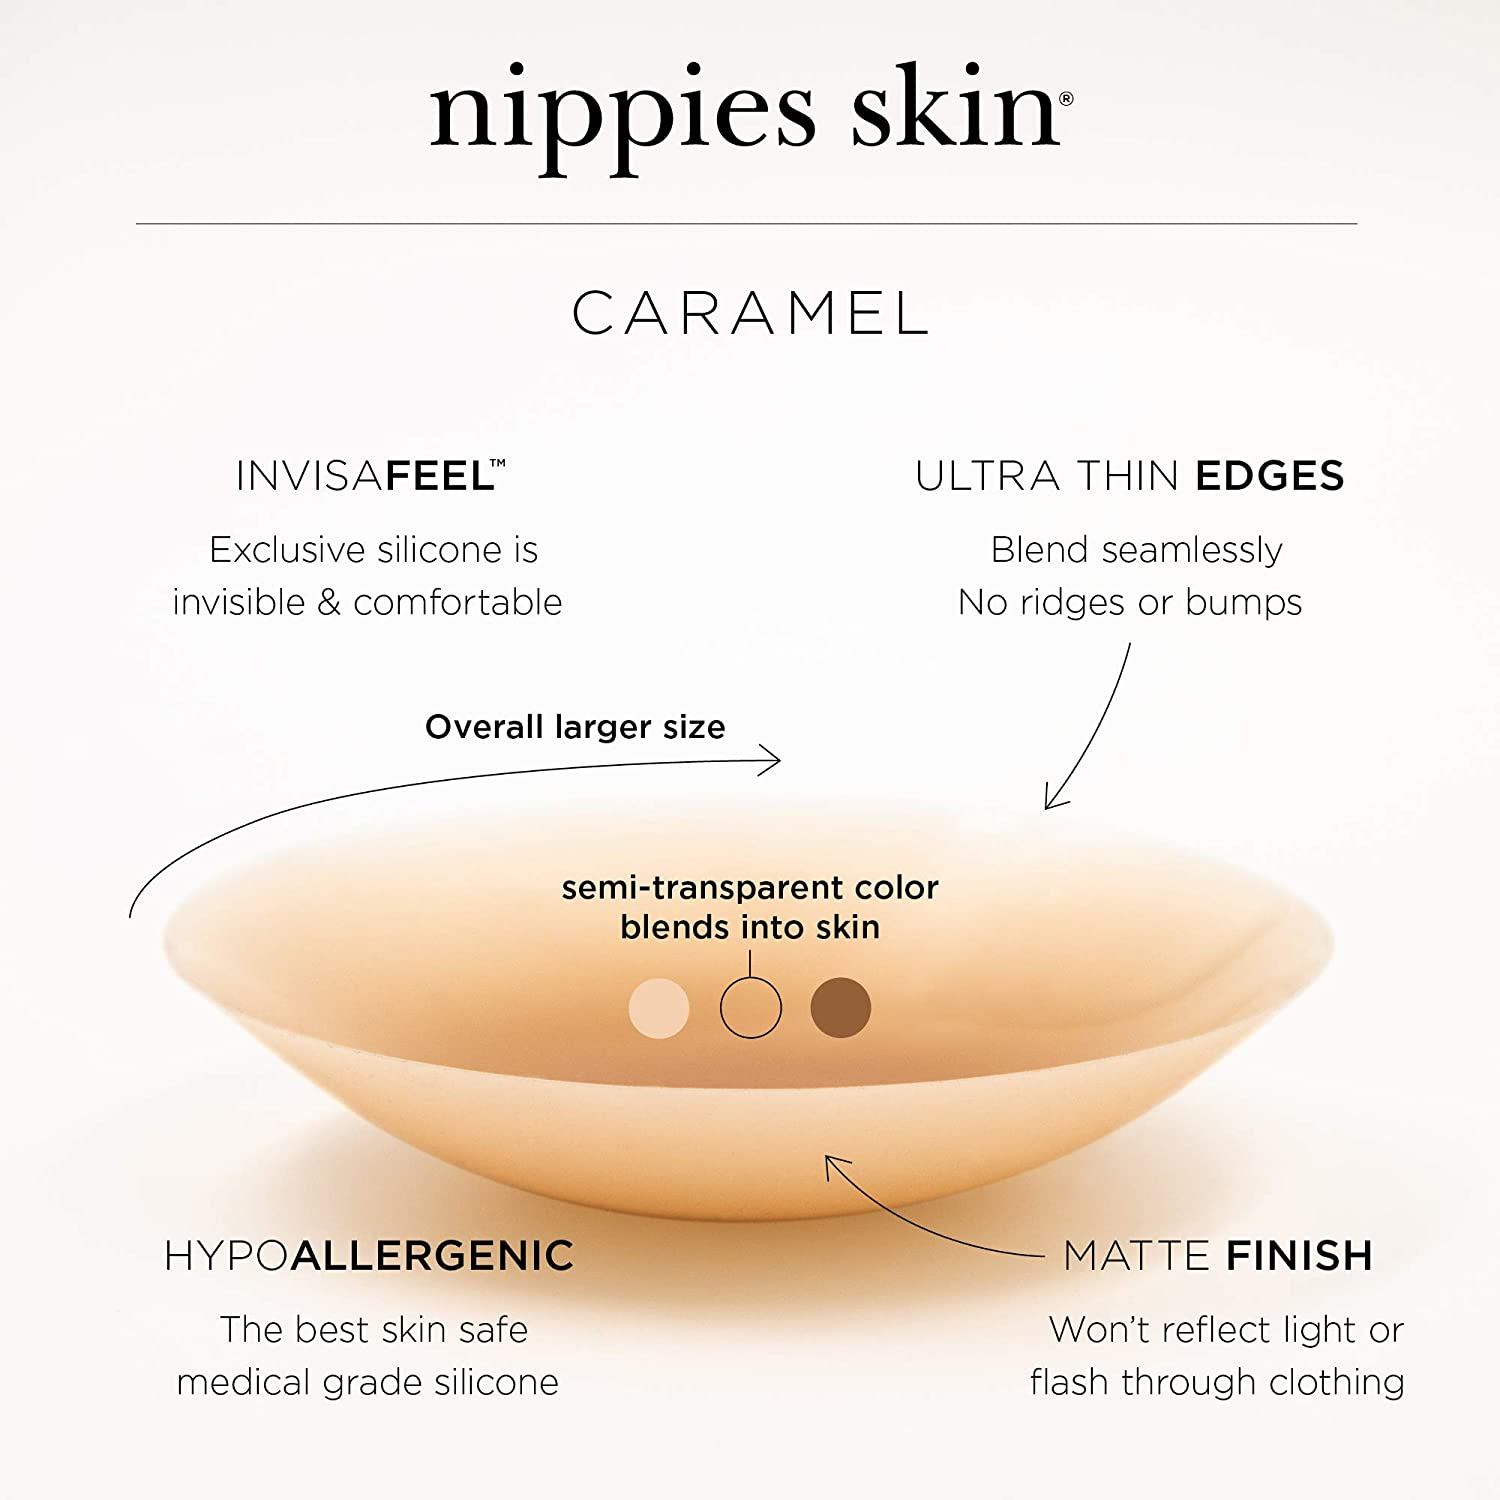 Nippies Skin Sticky Adhesive Pasties The Ultimate NippleCovers Caramel Skin